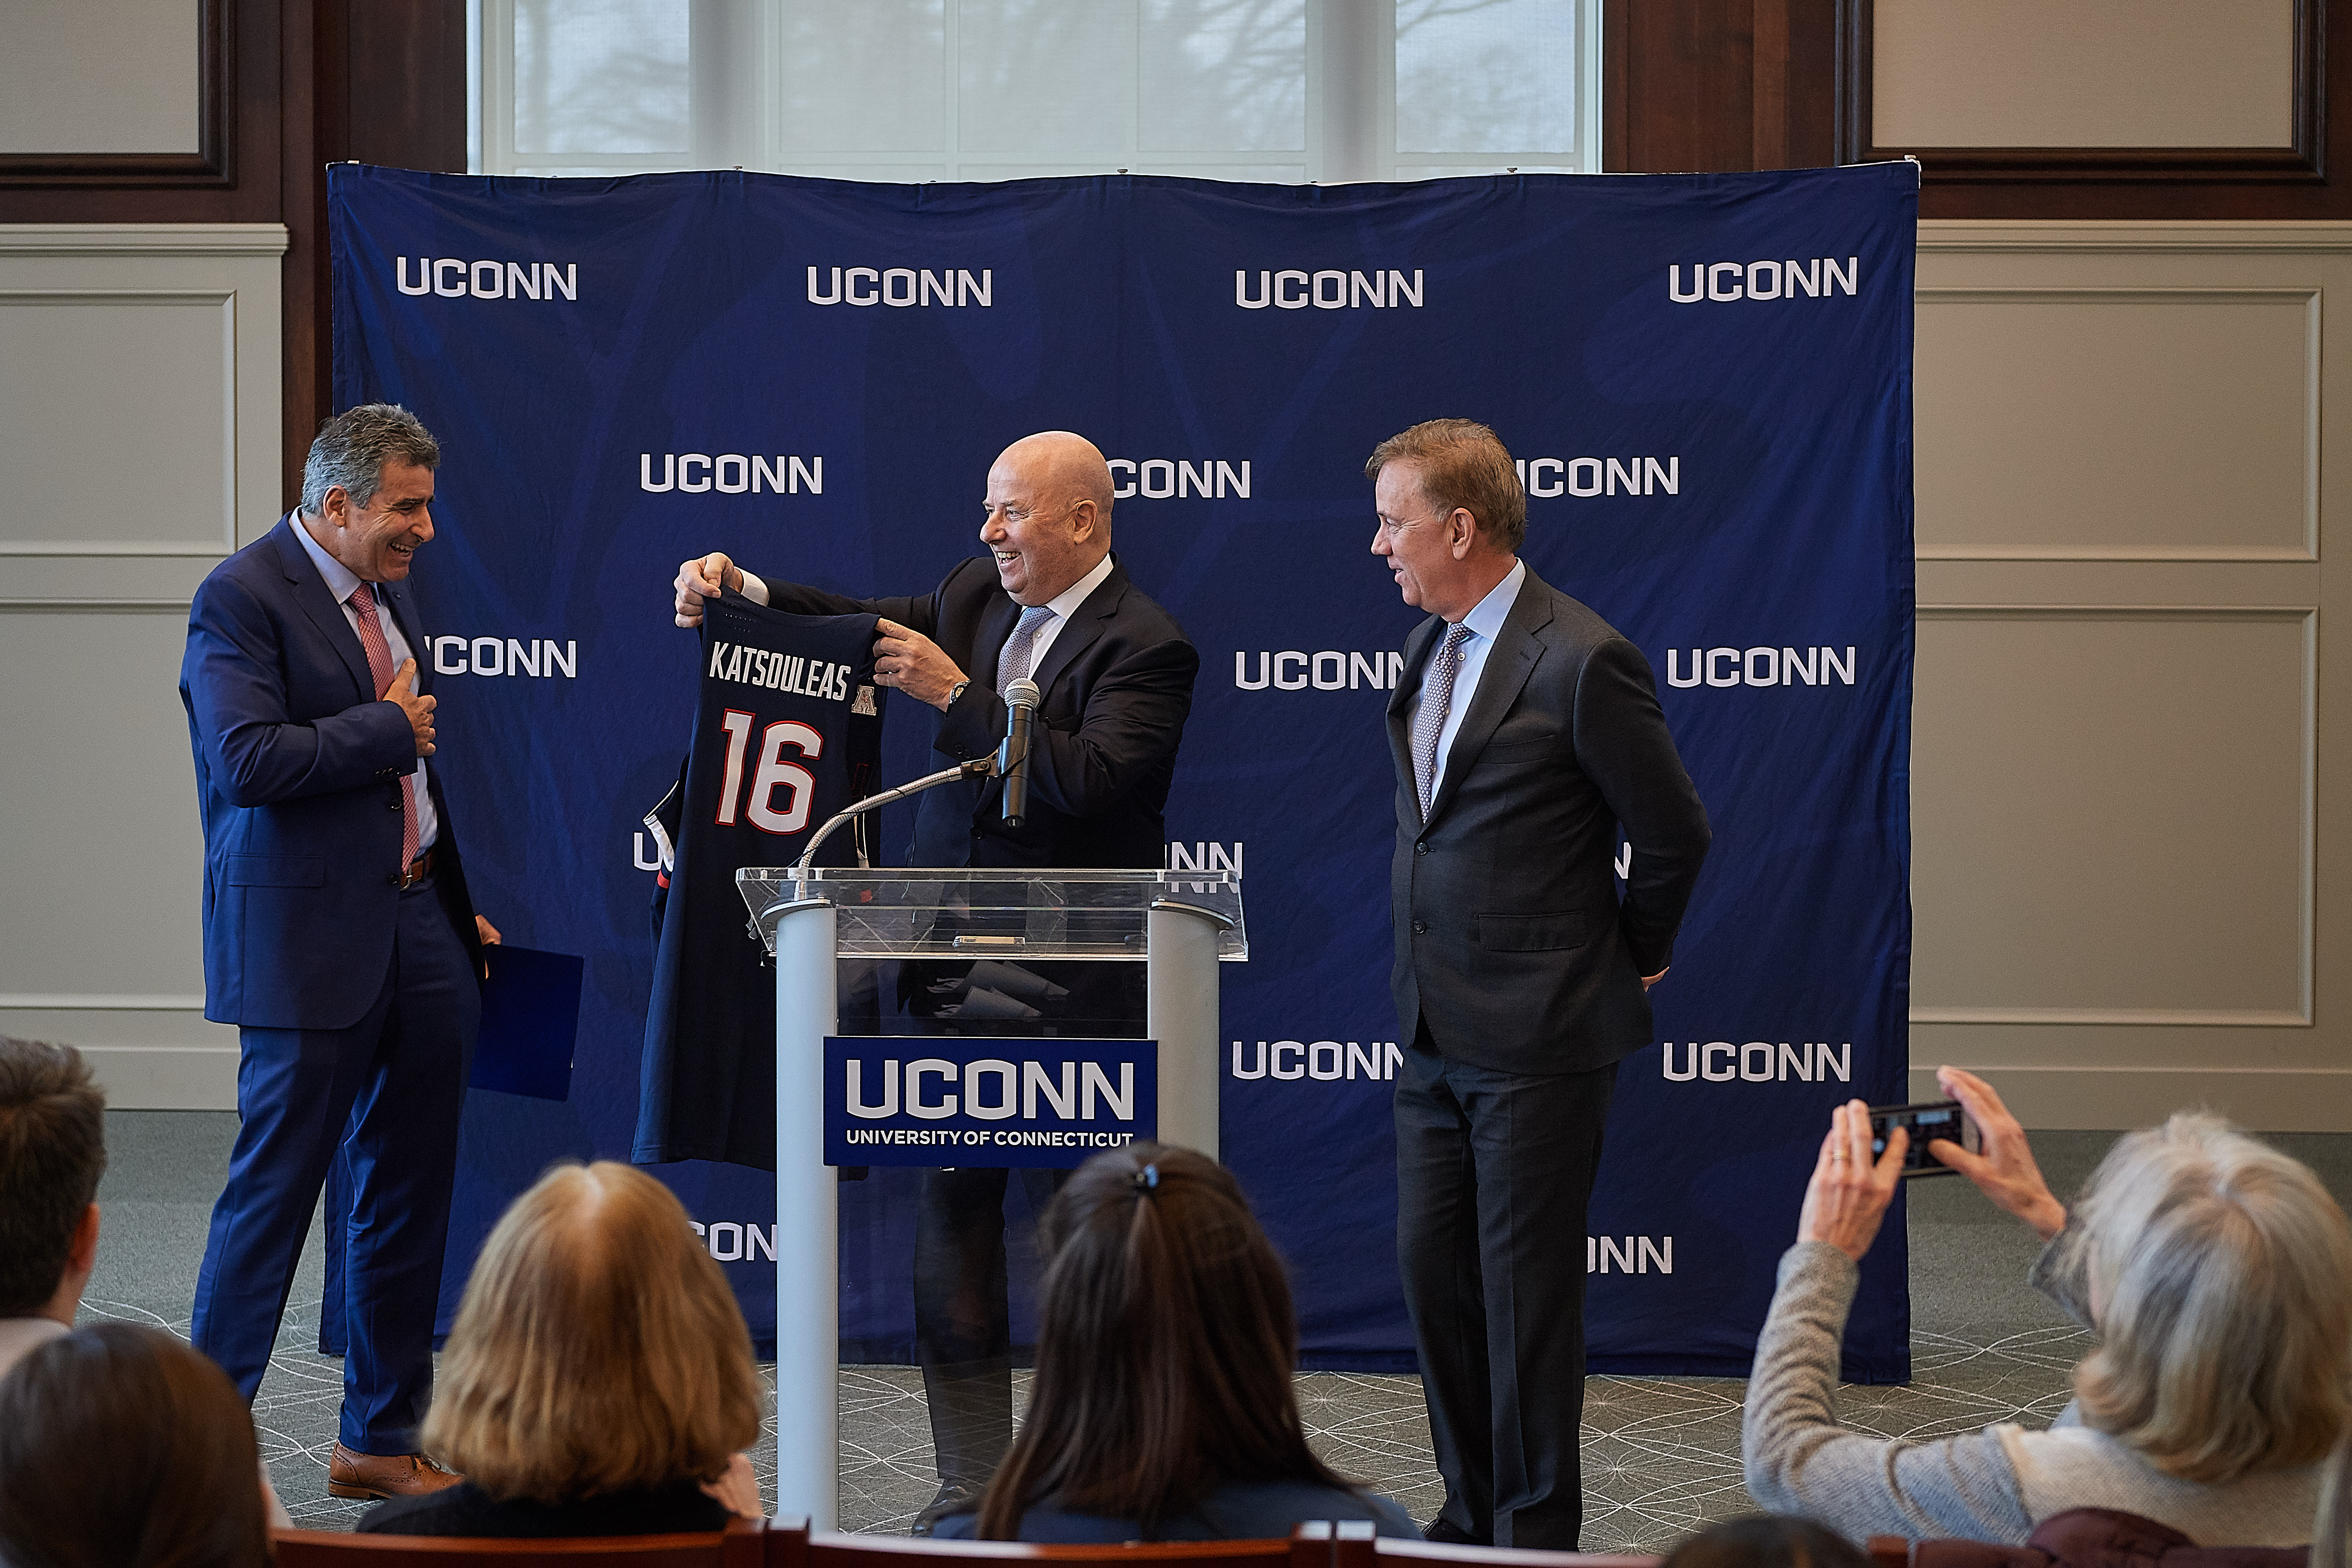 Thomas Katsouleas, left, reacts as he is presented with a basketball jersey by board chair Thomas Kruger, center, and Gov. Ned Lamont at a press conference following his appointment to be the 16th president of the University of Connecticut. (Peter Morenus/UConn Photo)